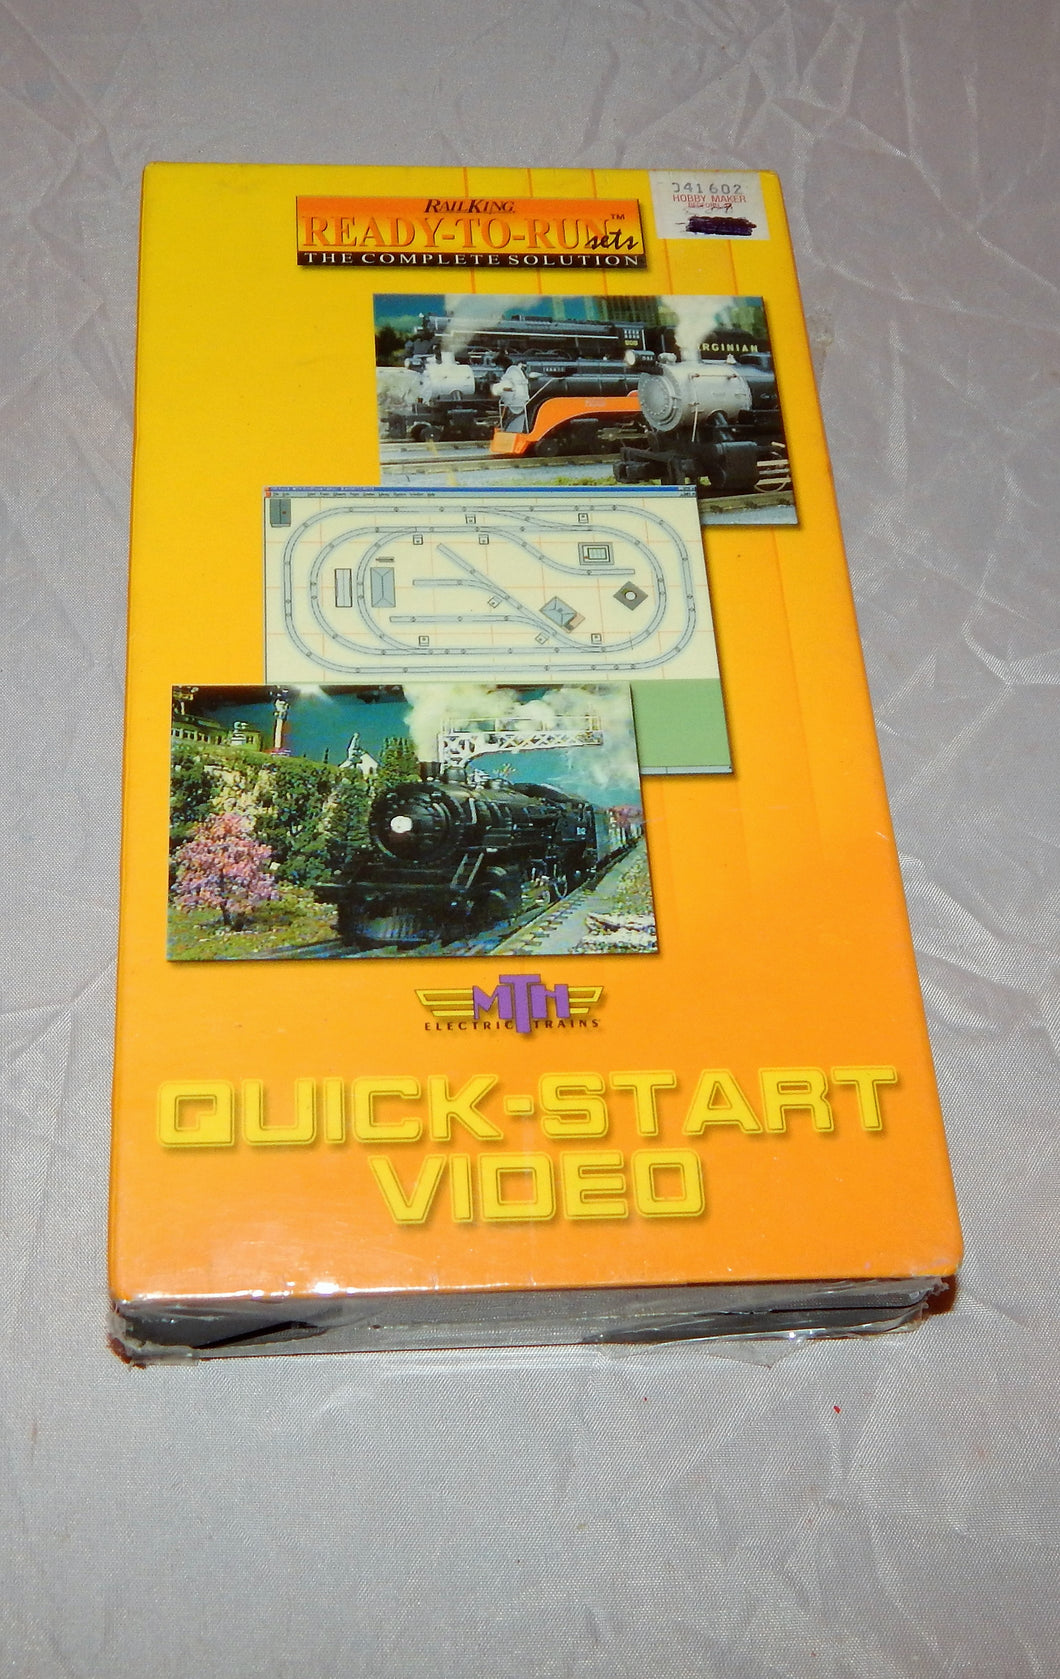 MTH Trains VHS Ready to Run Train SET instructional tape Sealed Quick Start RK